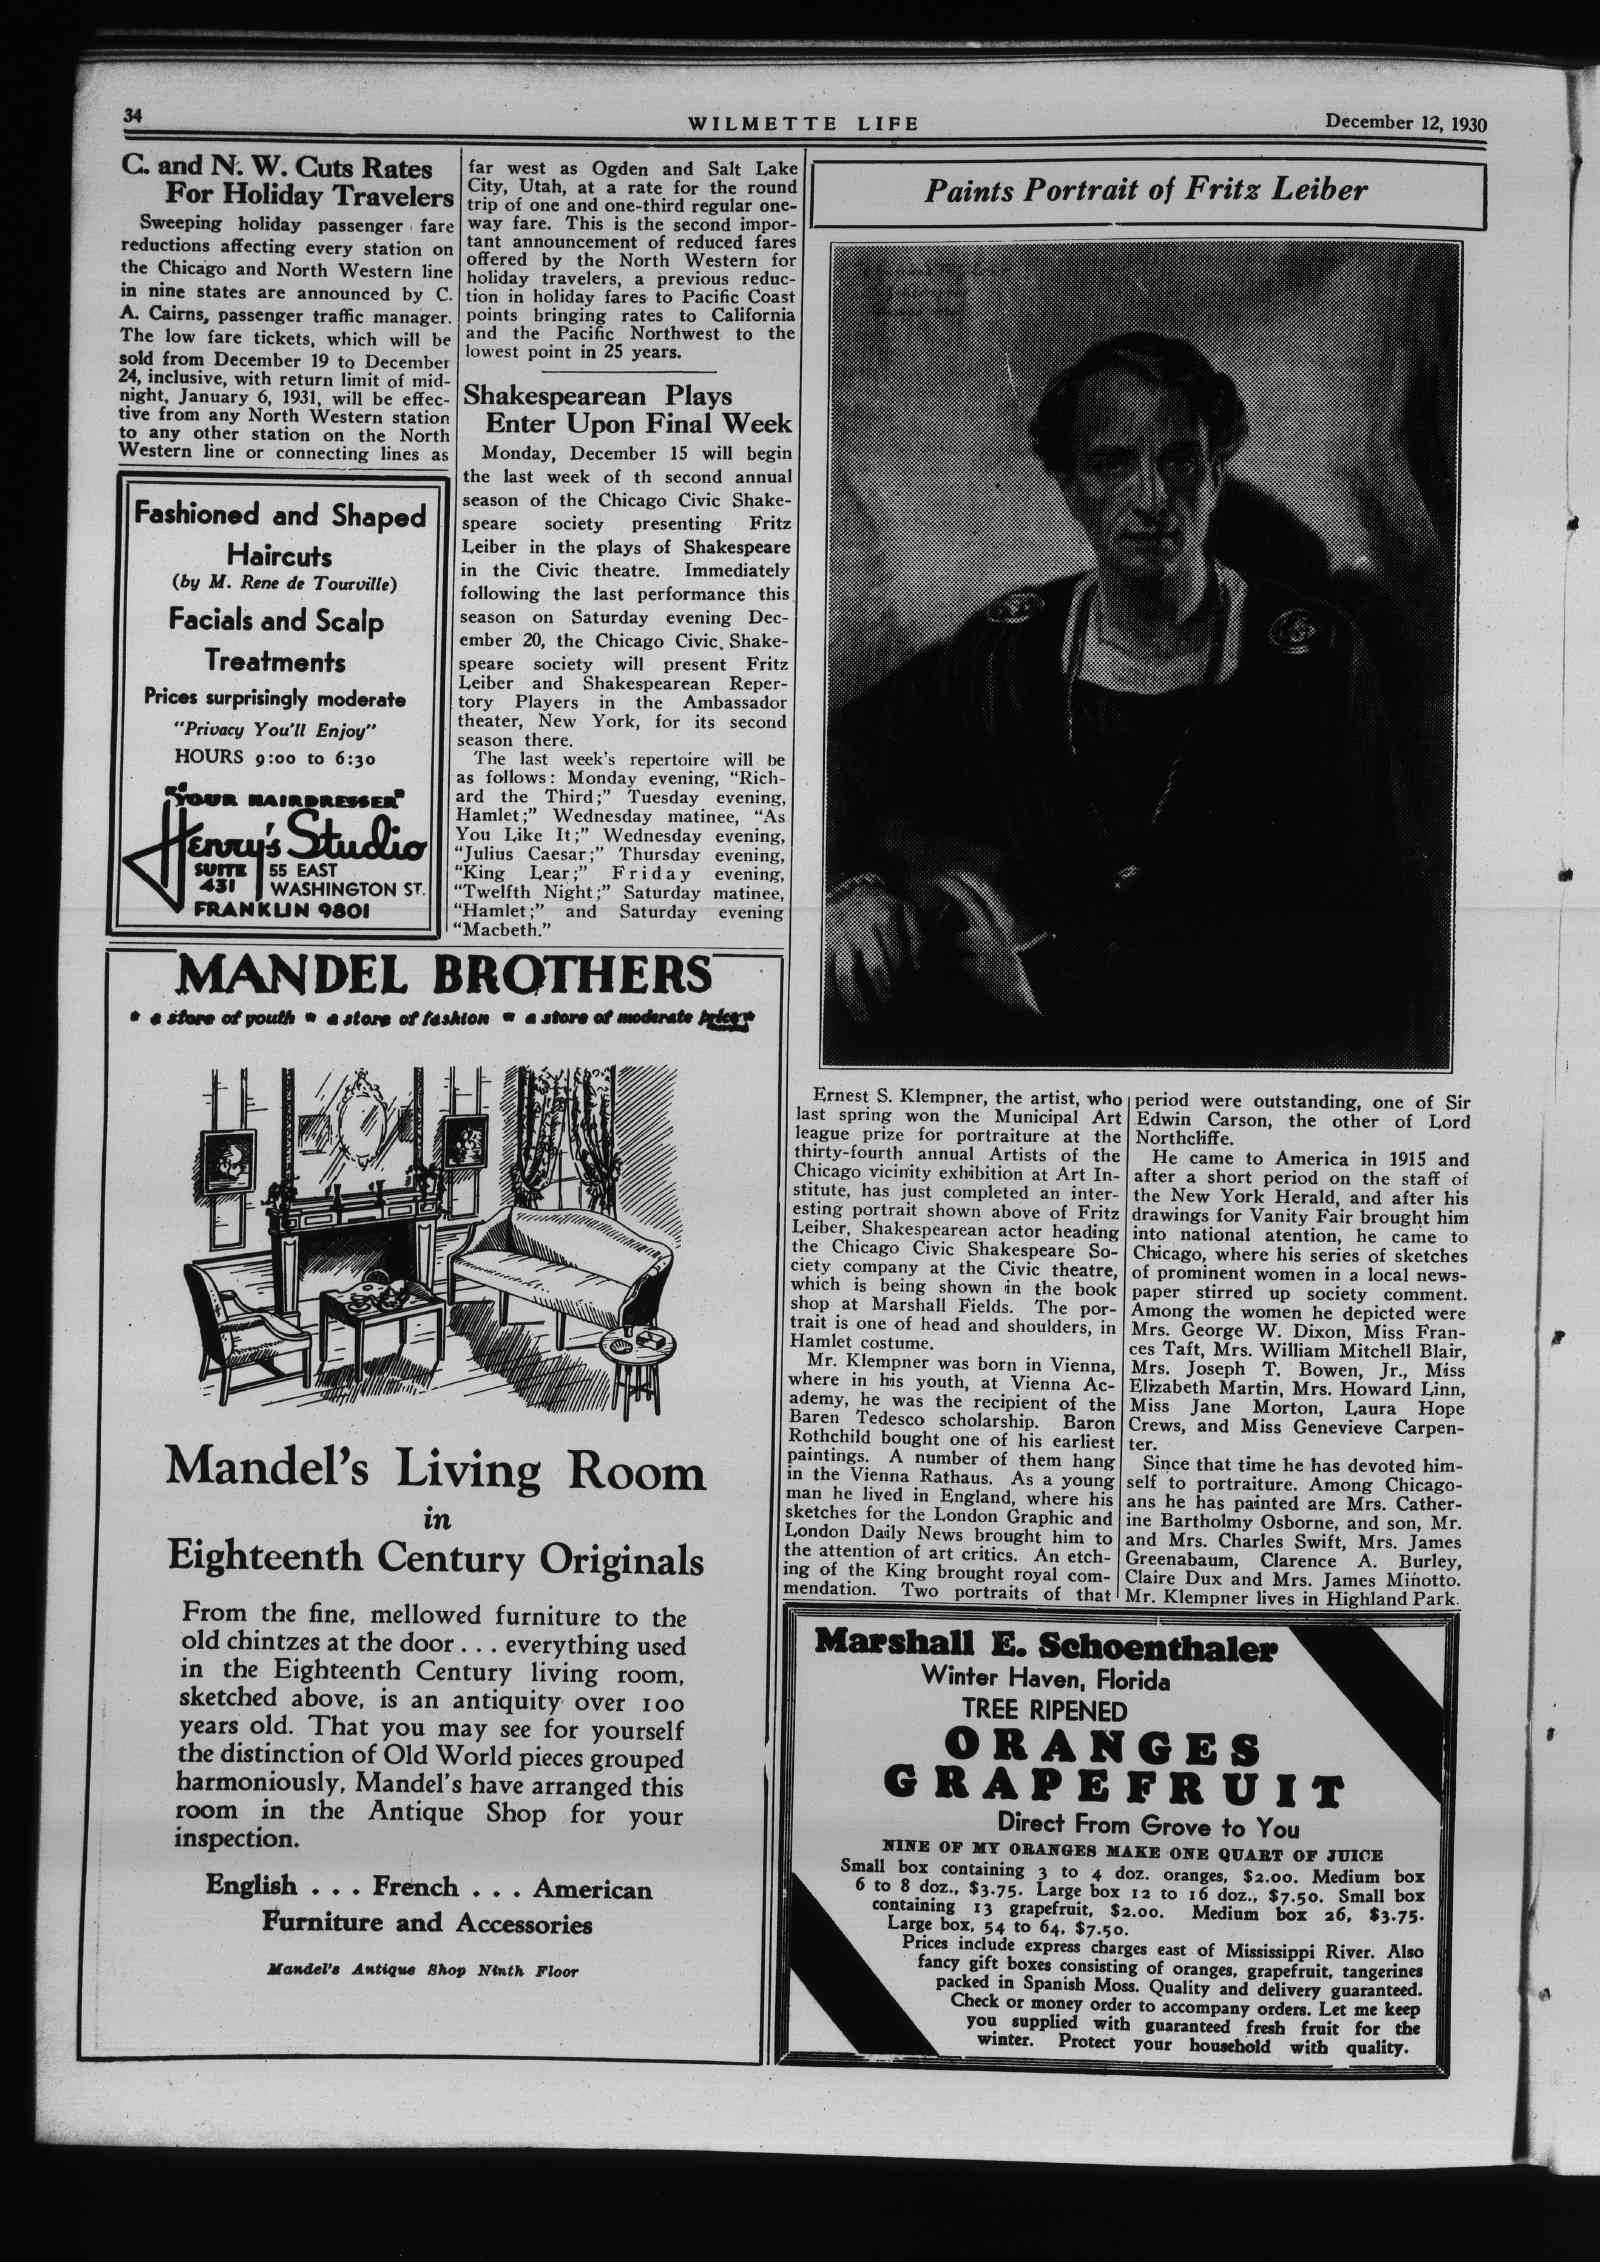 Wilmette Life (Wilmette, Illinois), 12 Dec 1930